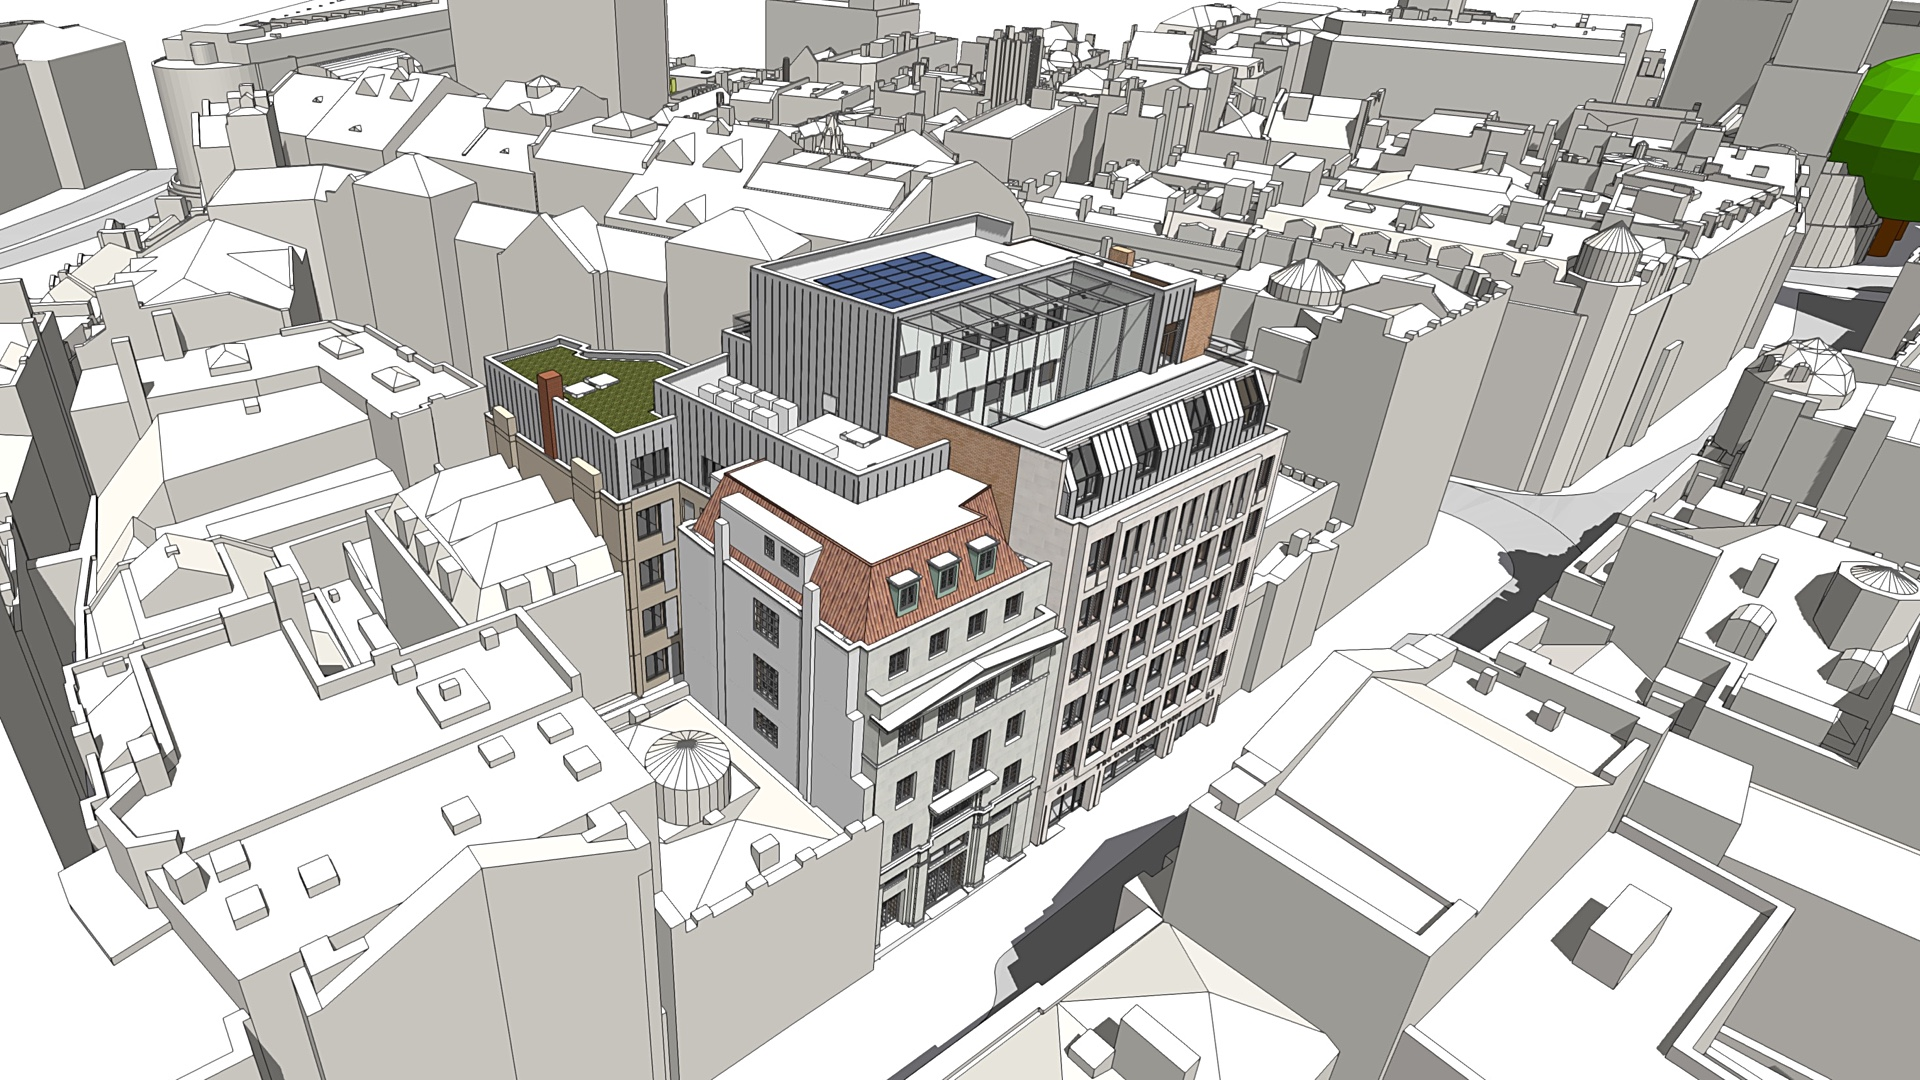 Planning application for hotel in Corn Street